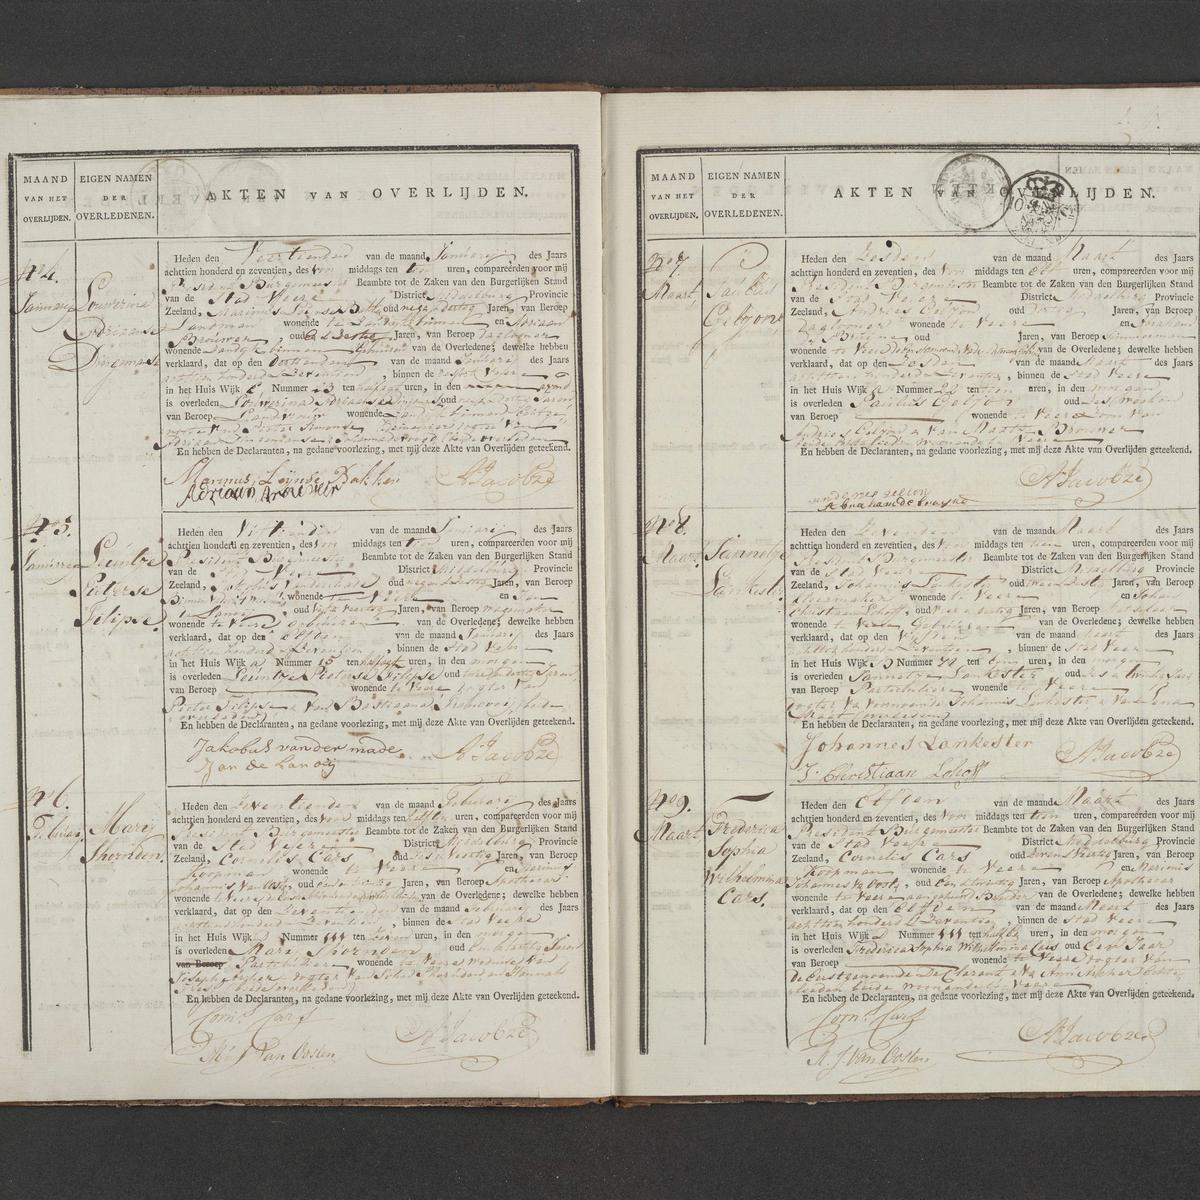 Civil registry of deaths, Veere, 1817, records 4-9